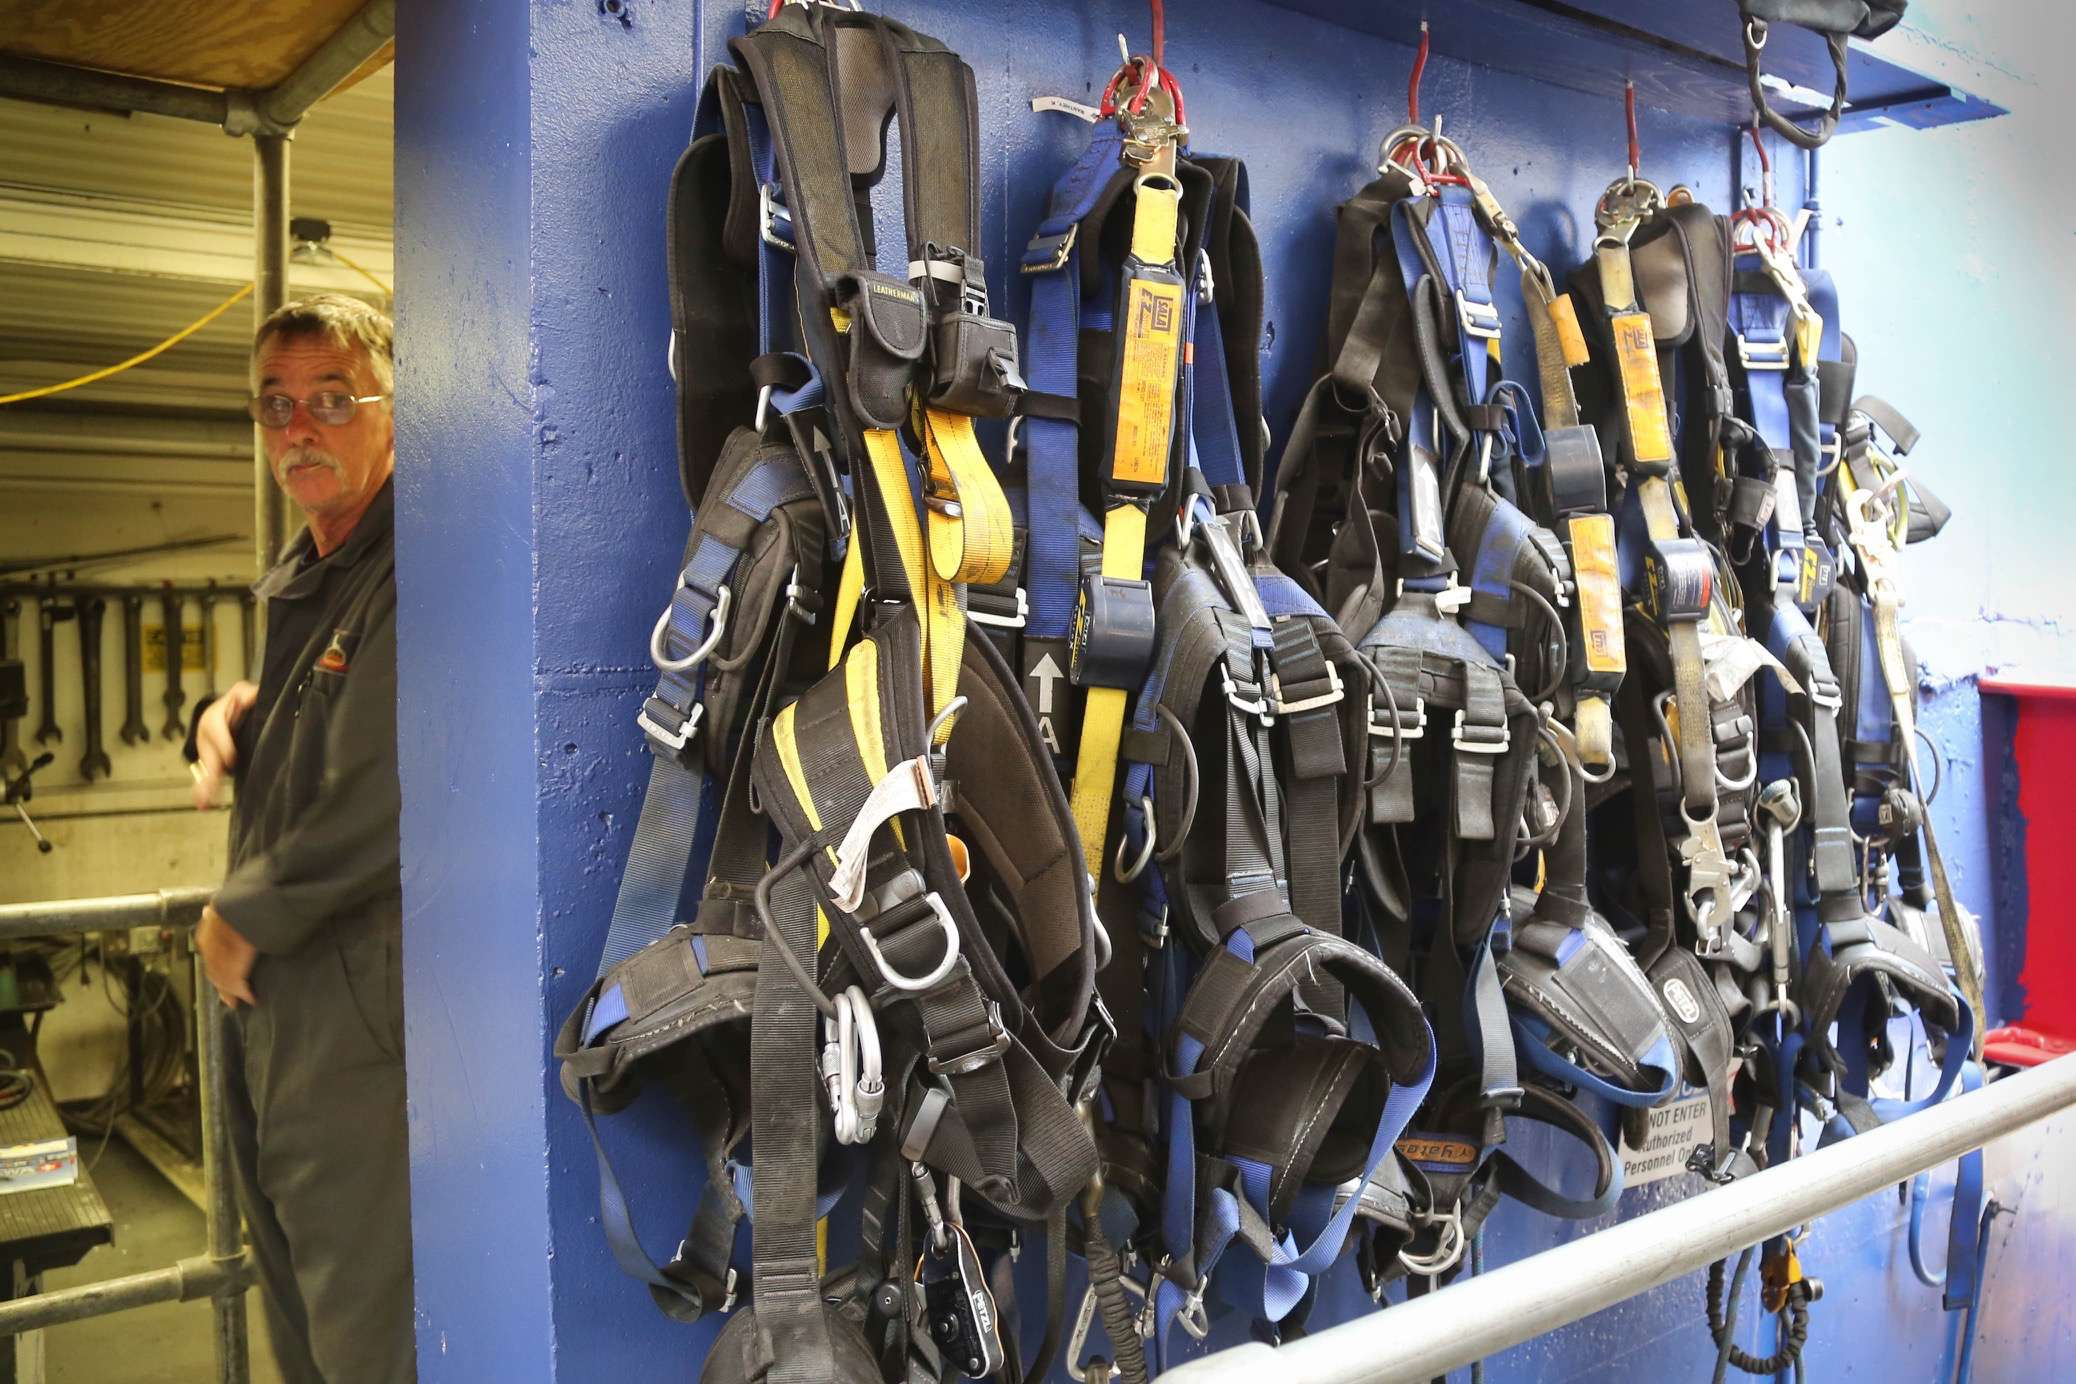 Safety for everyone, visitor and workers alike, is a top priority. Safety harnesses are a must for maintenance.